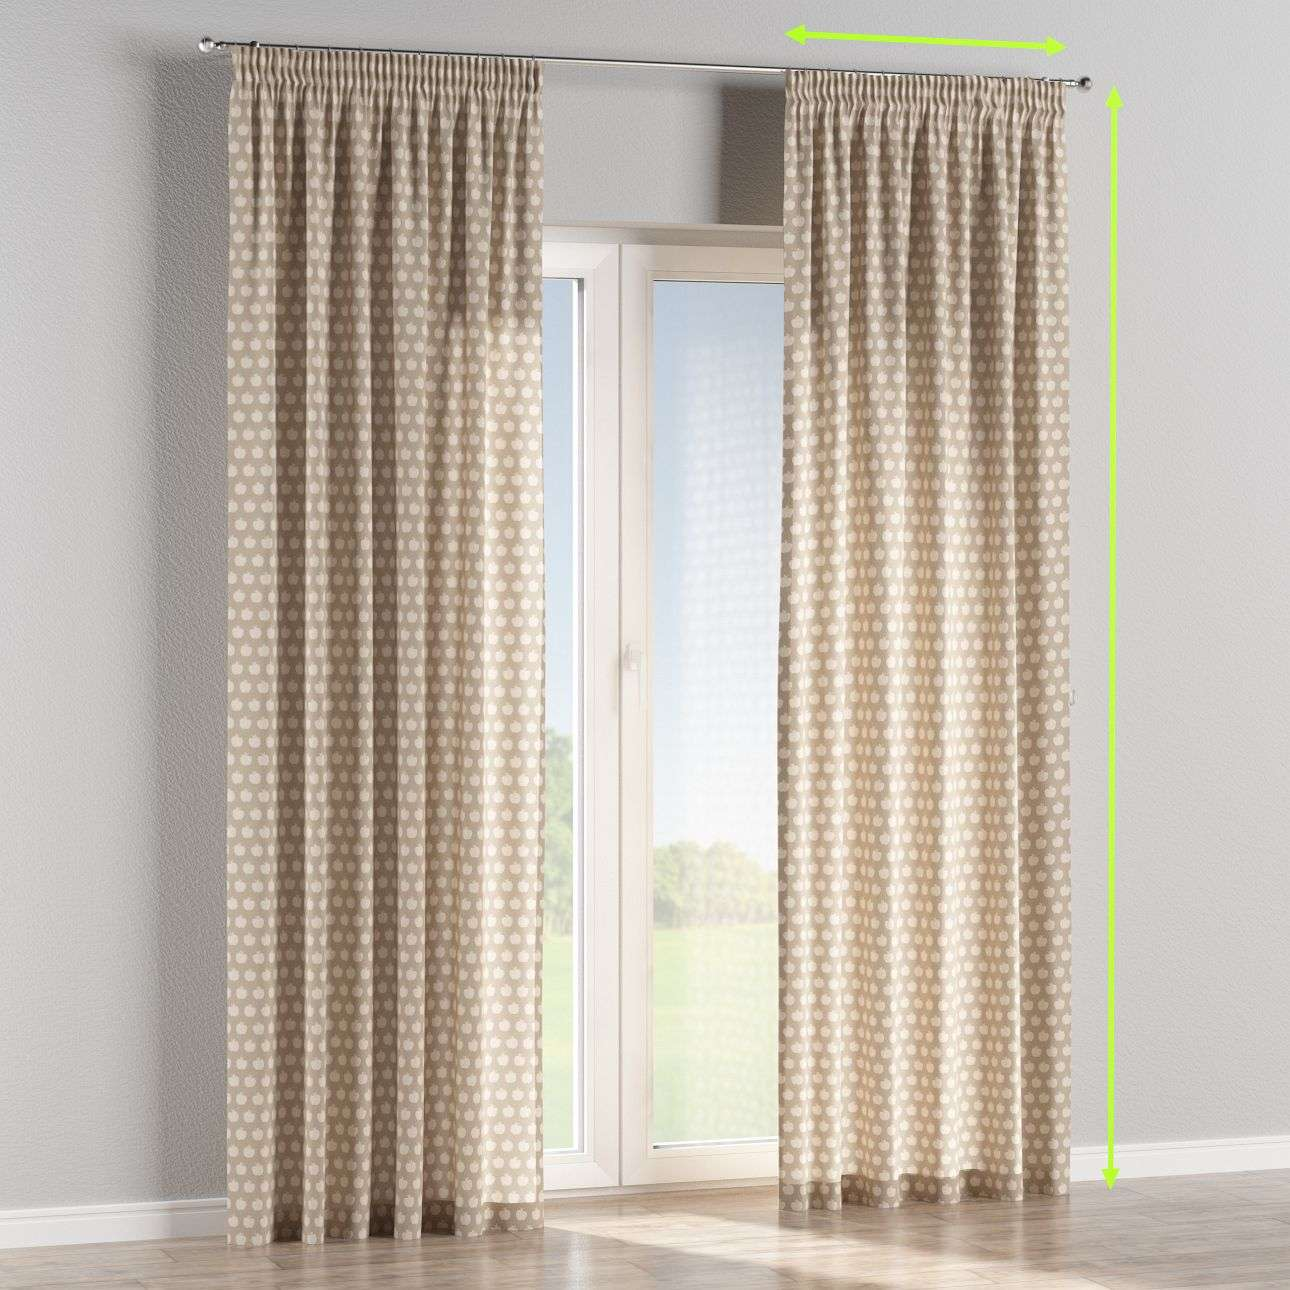 Pencil pleat lined curtains in collection Flowers, fabric: 140-55